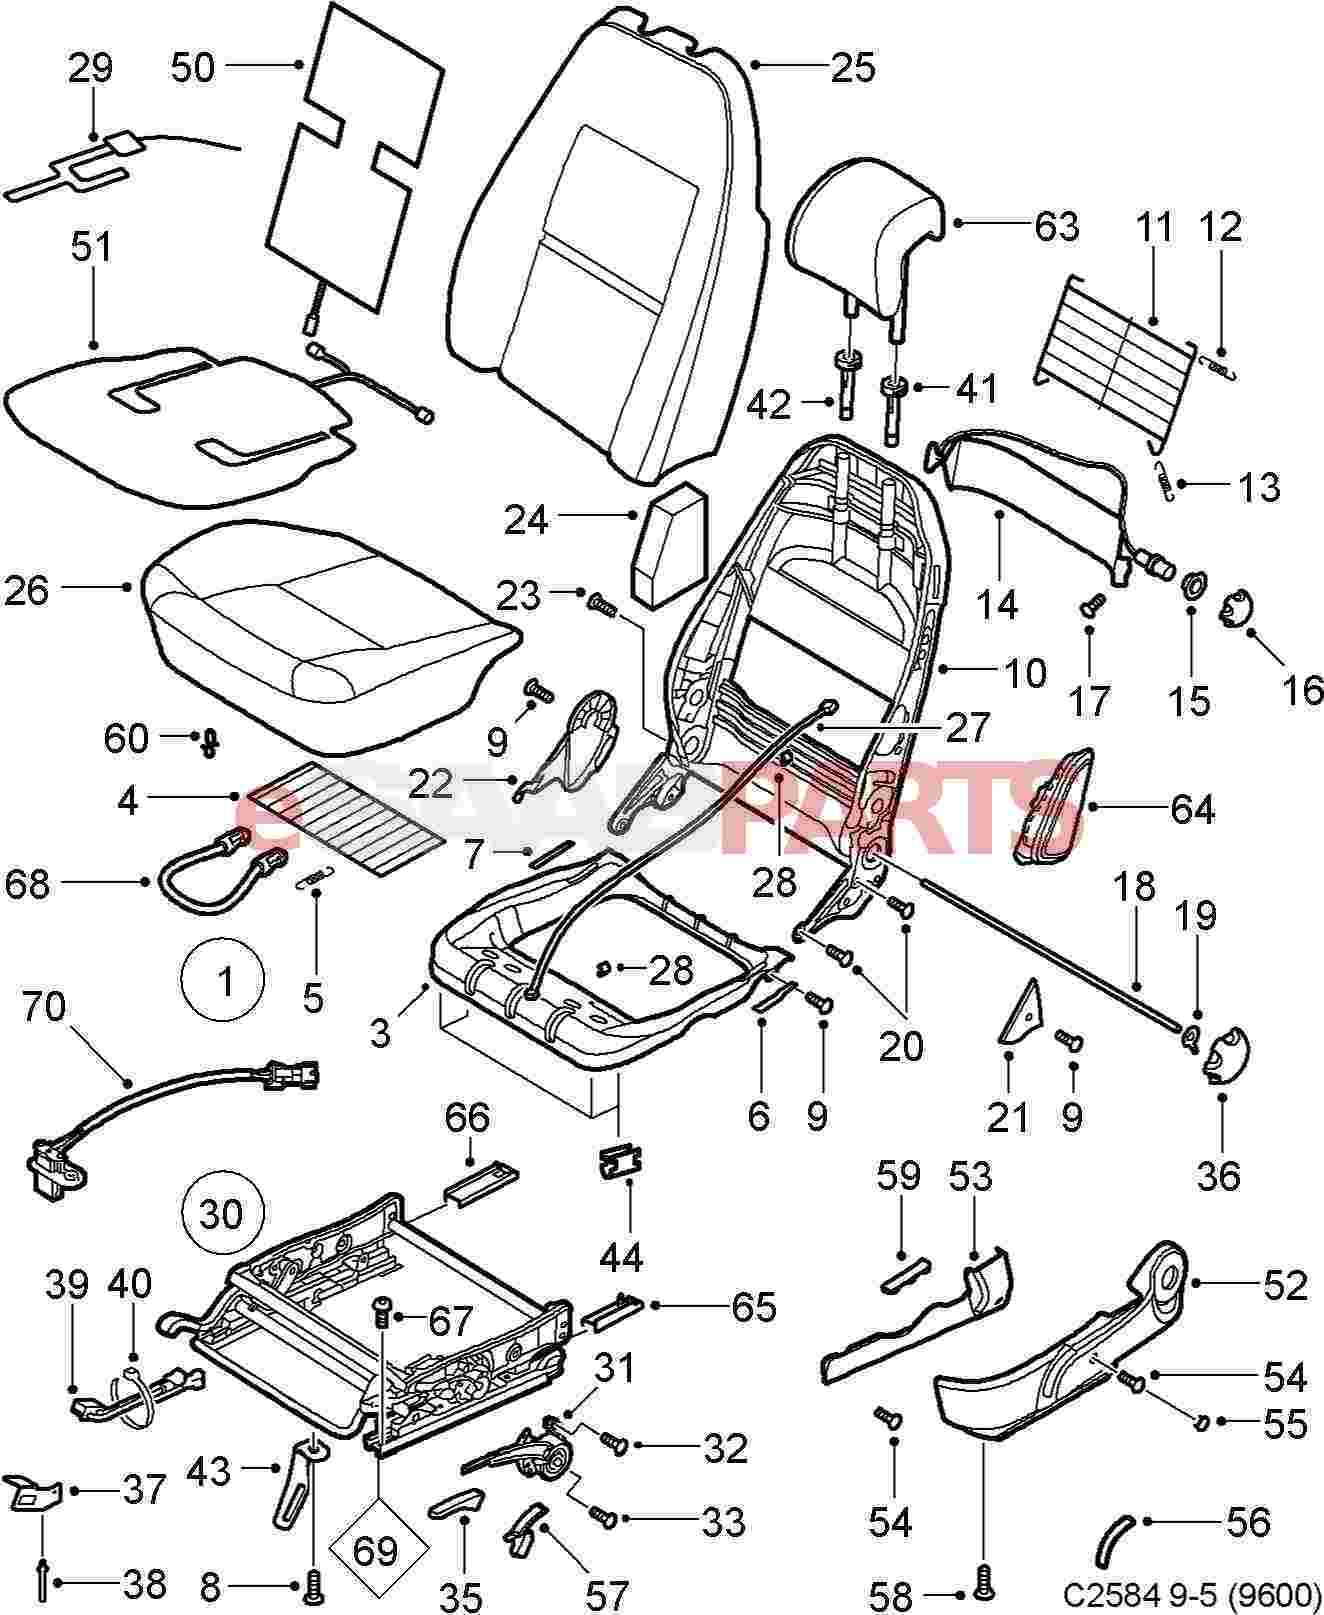 Ford Pickup Seat Parts Diagram